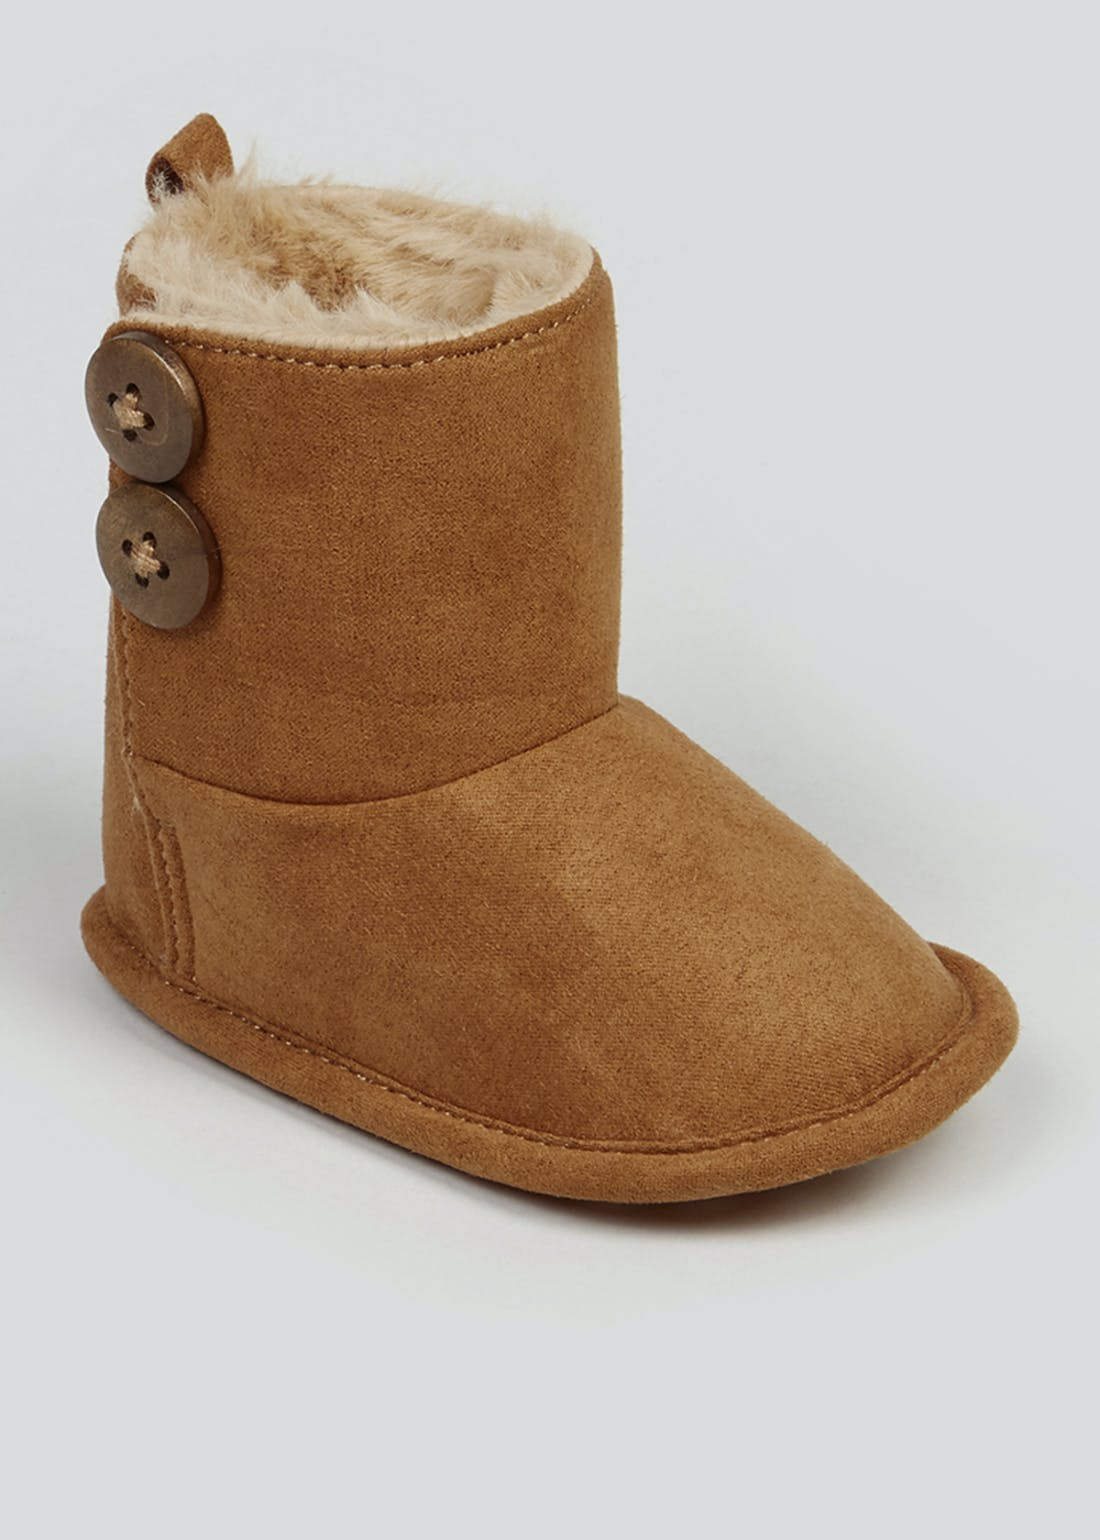 Unisex Tan Soft Sole Boots (Newborn-18mths)